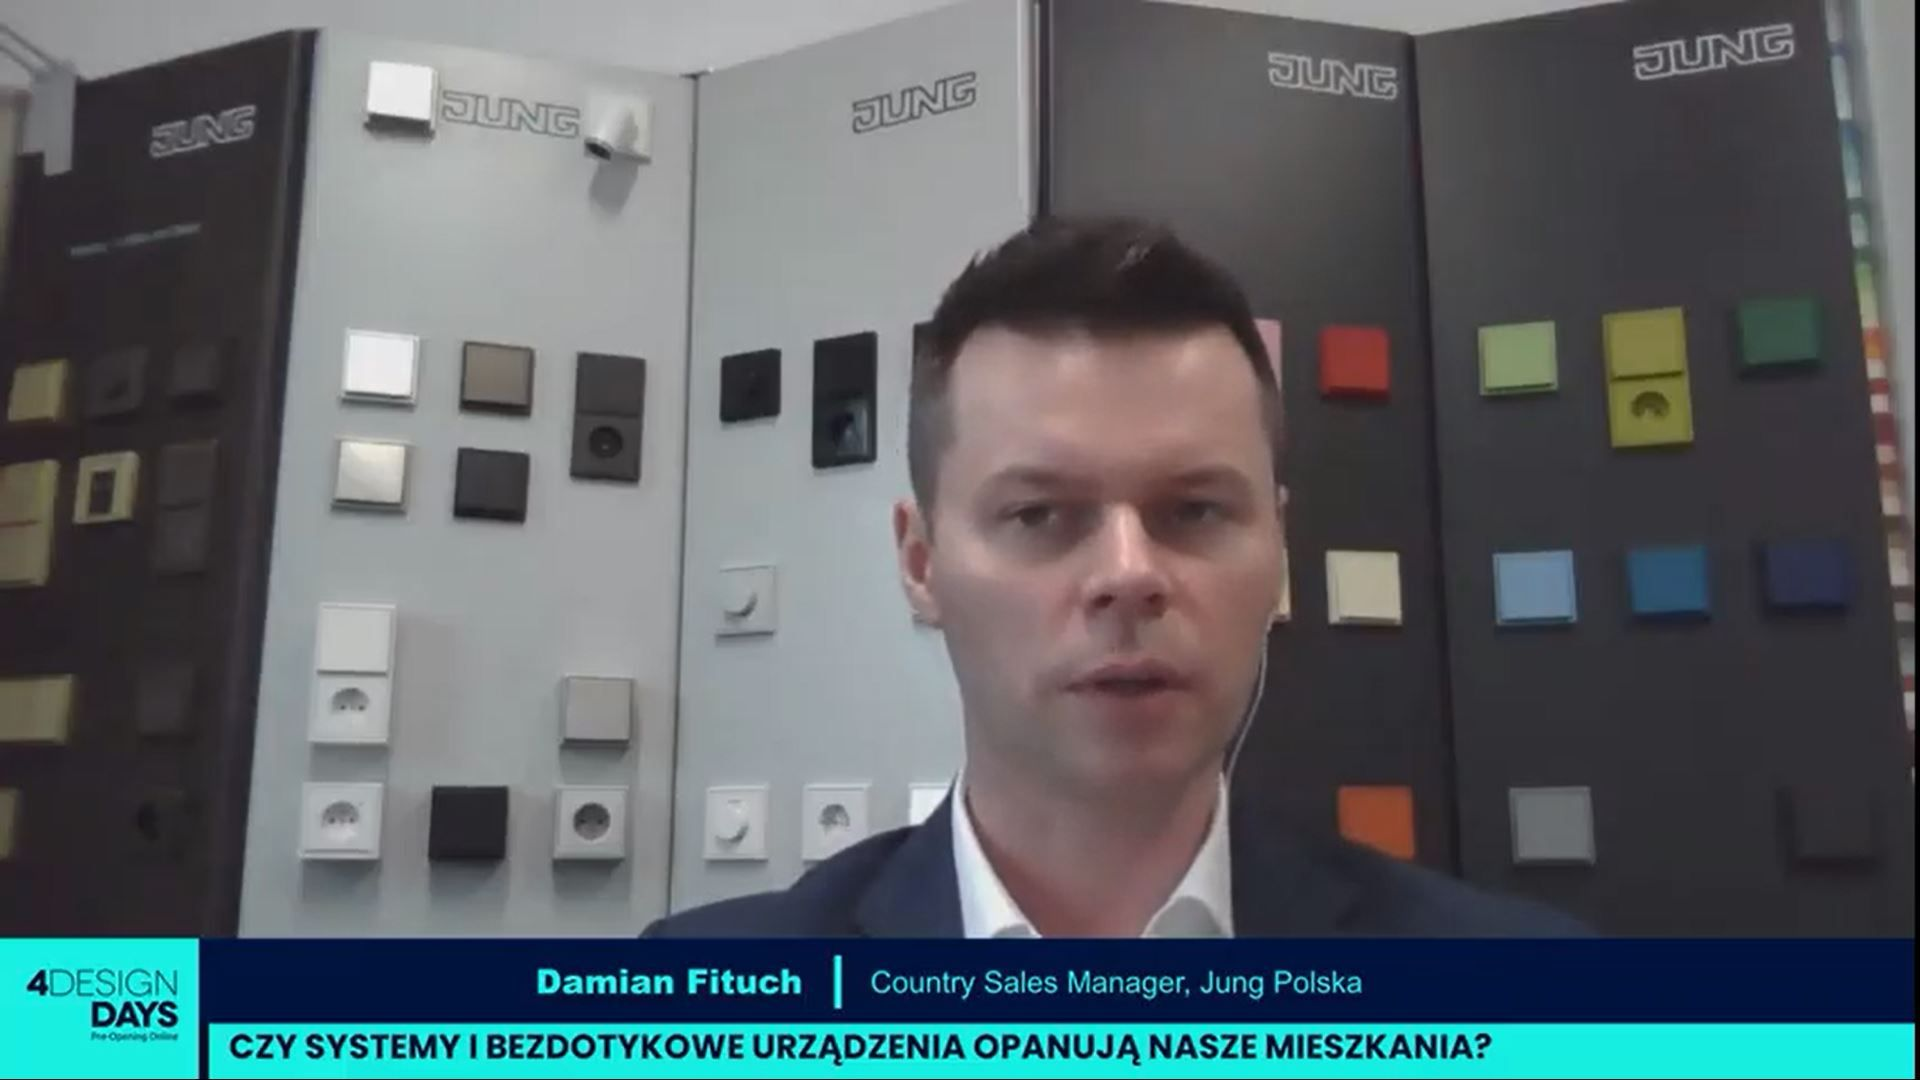 Damian Fituch, Country Sales Manager, Jung Polska